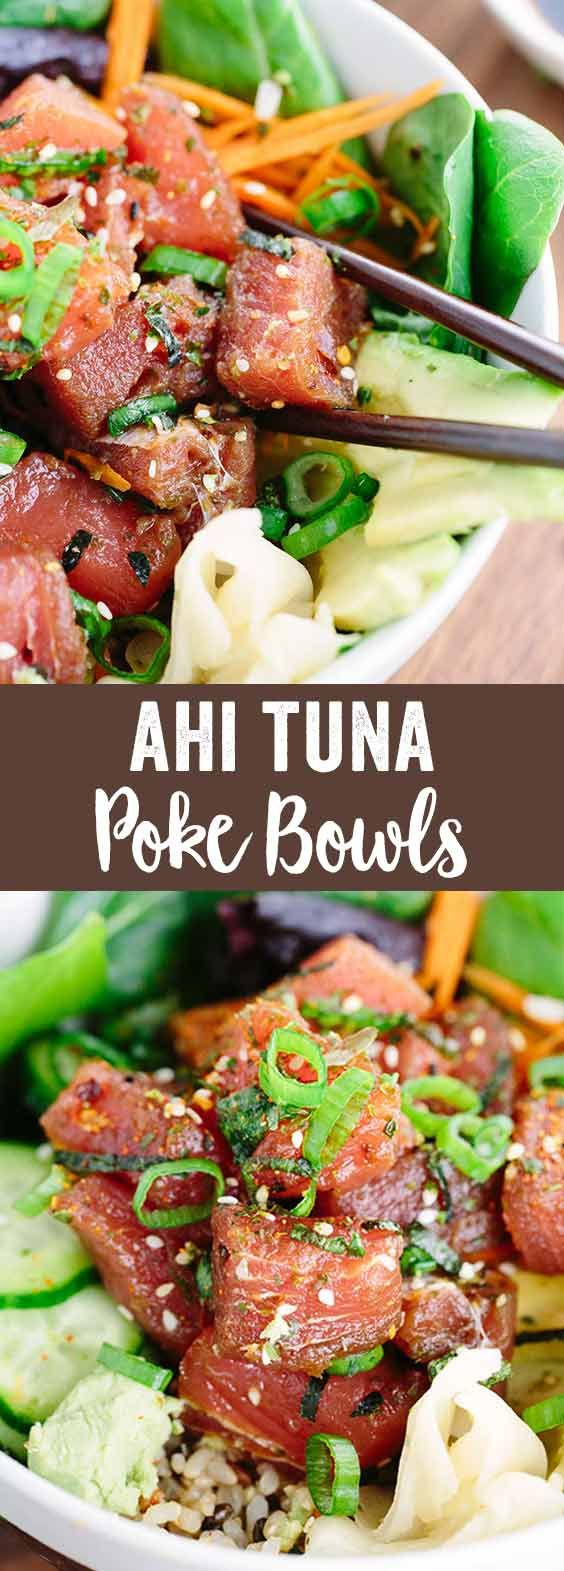 Ahi Tuna Poke Bowl - This Japanese recipe is loaded with healthy brown rice, salad, vegetables and topped with marinated tuna poke. via @foodiegavin